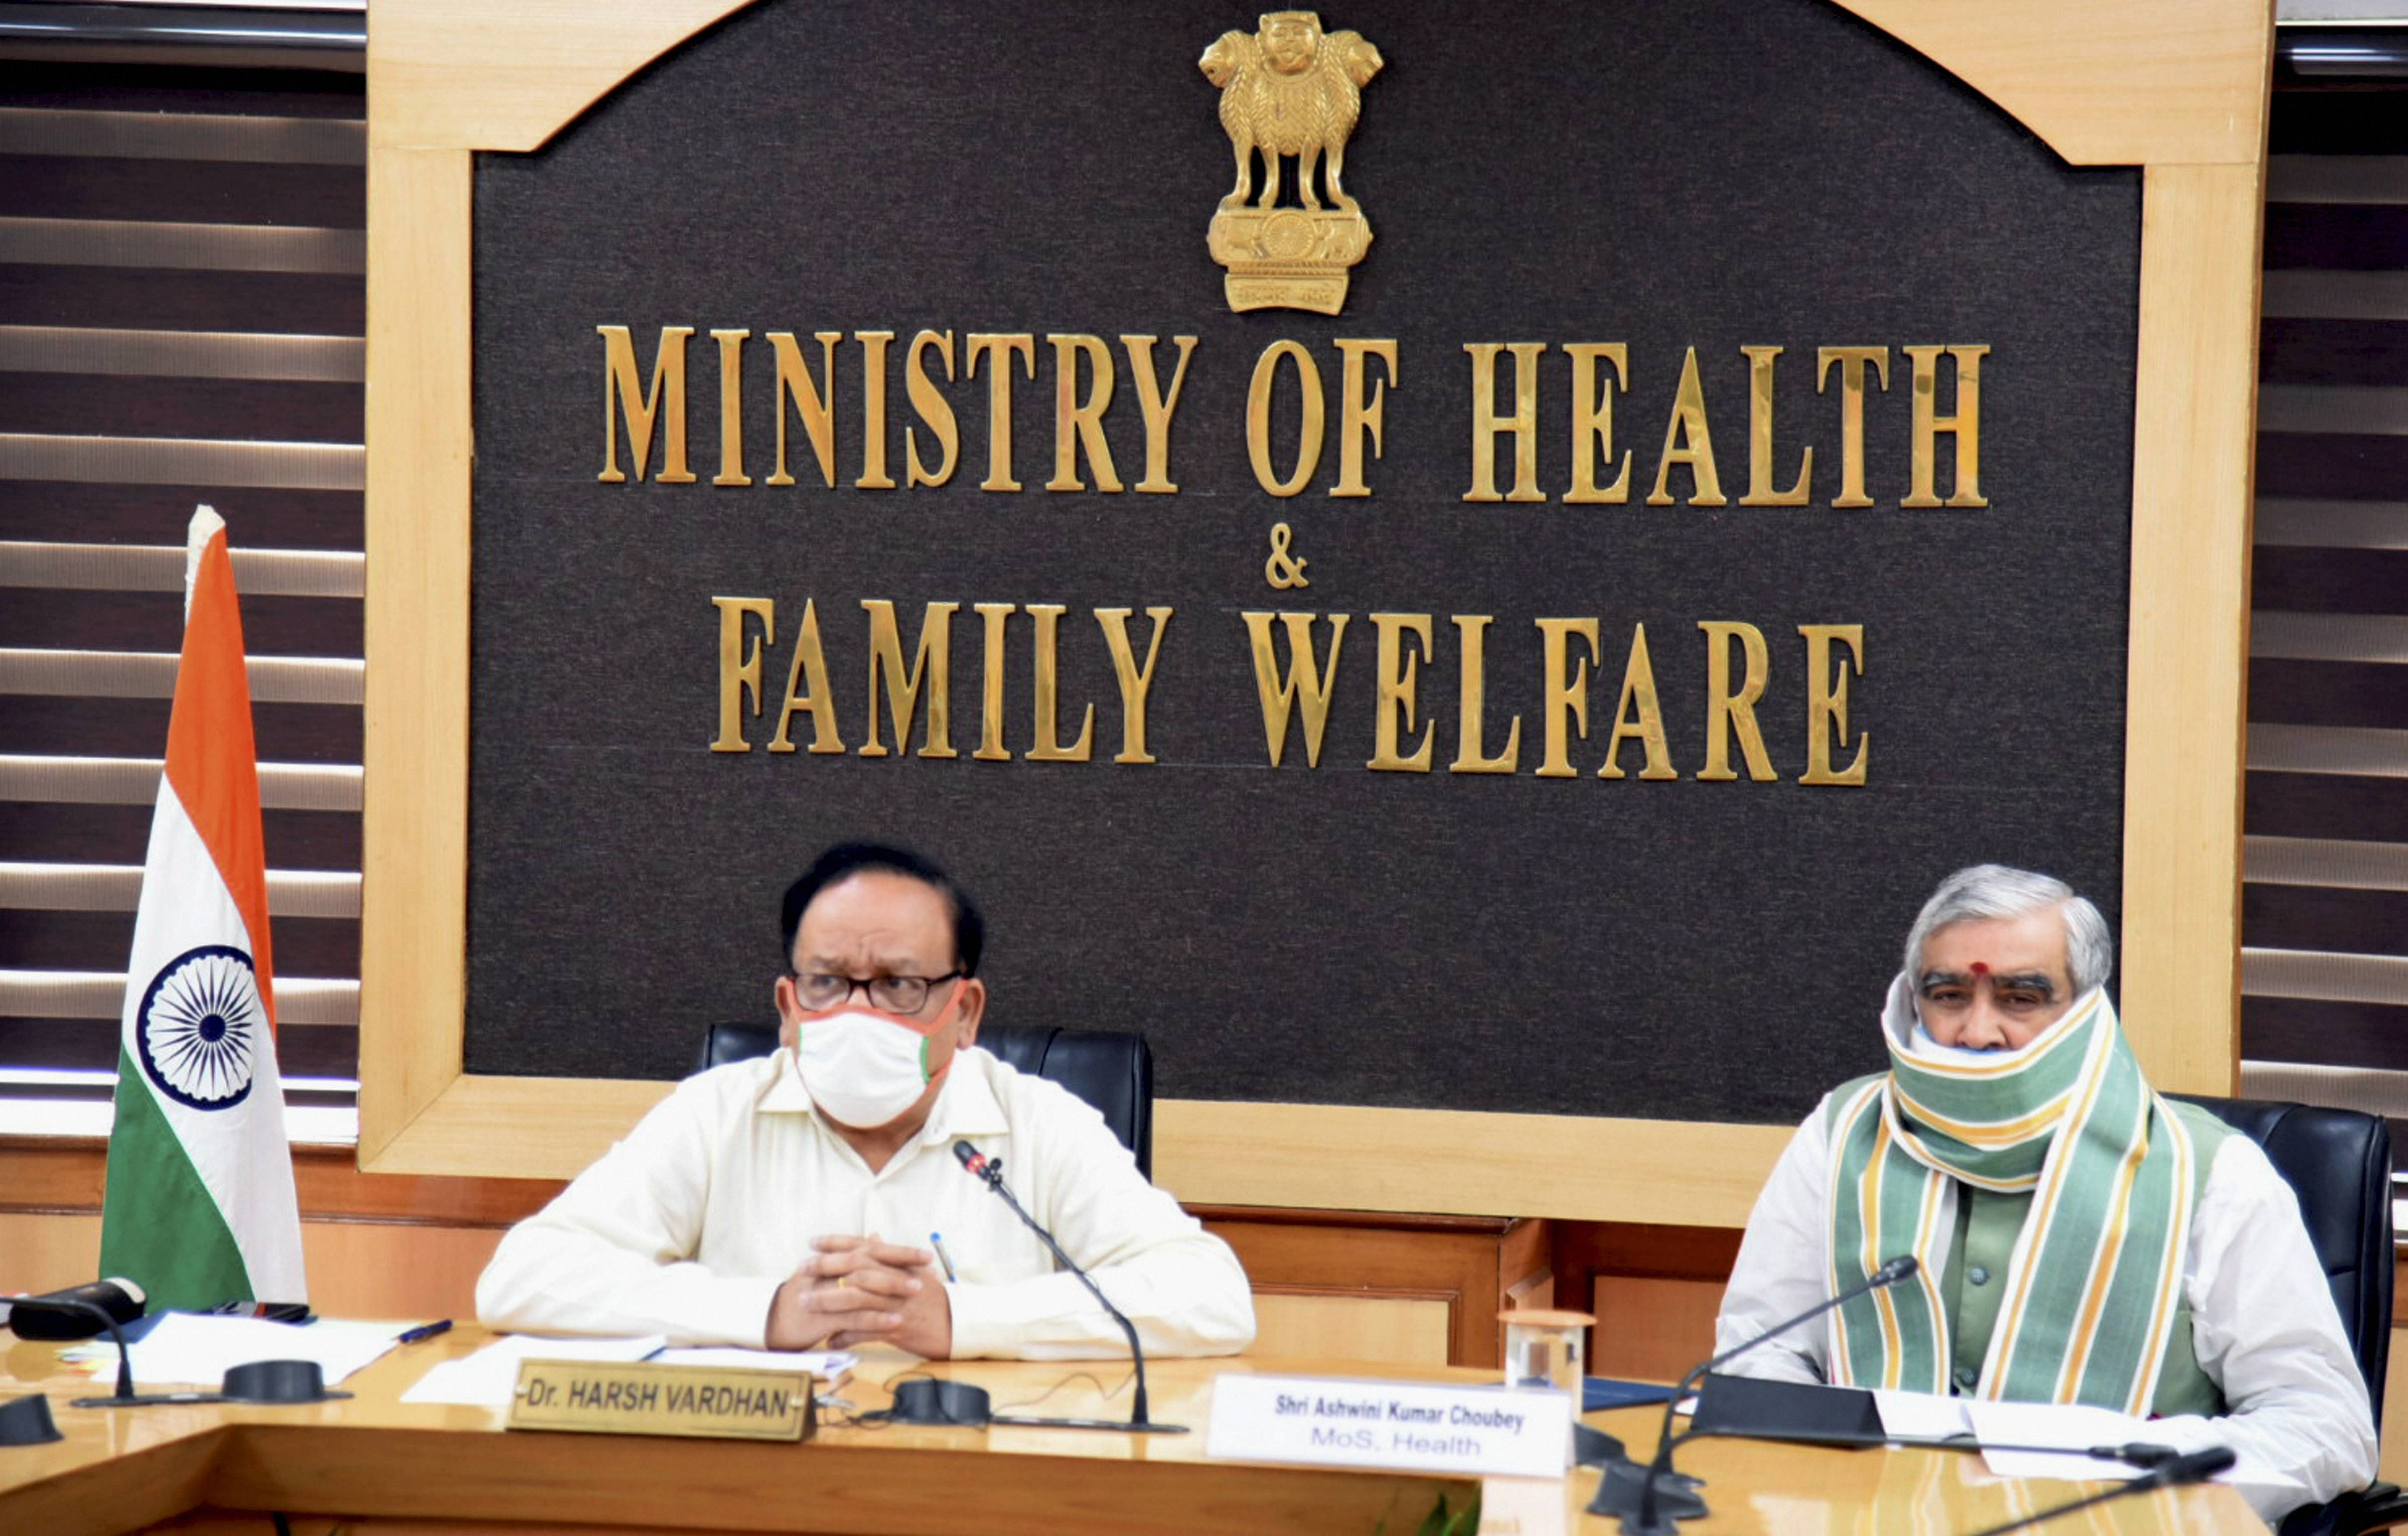 Health Minister Dr Harsh Vardhan chairs a high-level review meeting with Lt. Governor of Delhi Anil Baijal, Delhi Health Minister Satyendra Jain, various District Magistrates, Commissioners & Mayors of Delhi on status, preparations & management of Covid-19 in various districts of NCT of Delhi.